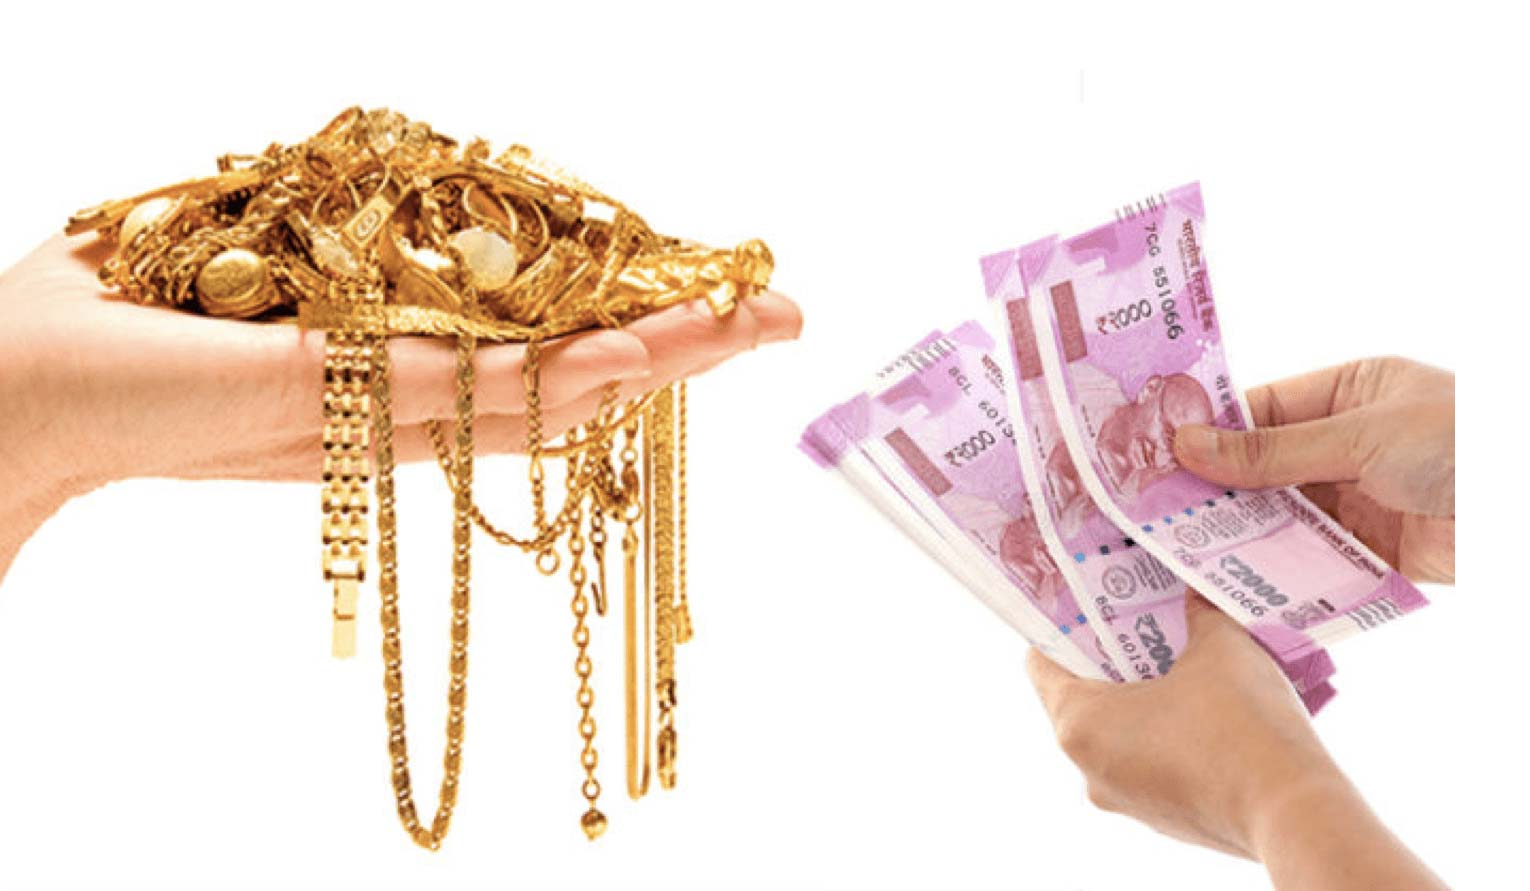 sell gold in chandigarh, sell gold for cash in chandigarh, gold buyer in chandigarh, cash for gold in chandigarh, Sell Gold in Solan, sell gold in una, sell gold in baddi, sell gold in shimla, sell gold in parwanoo